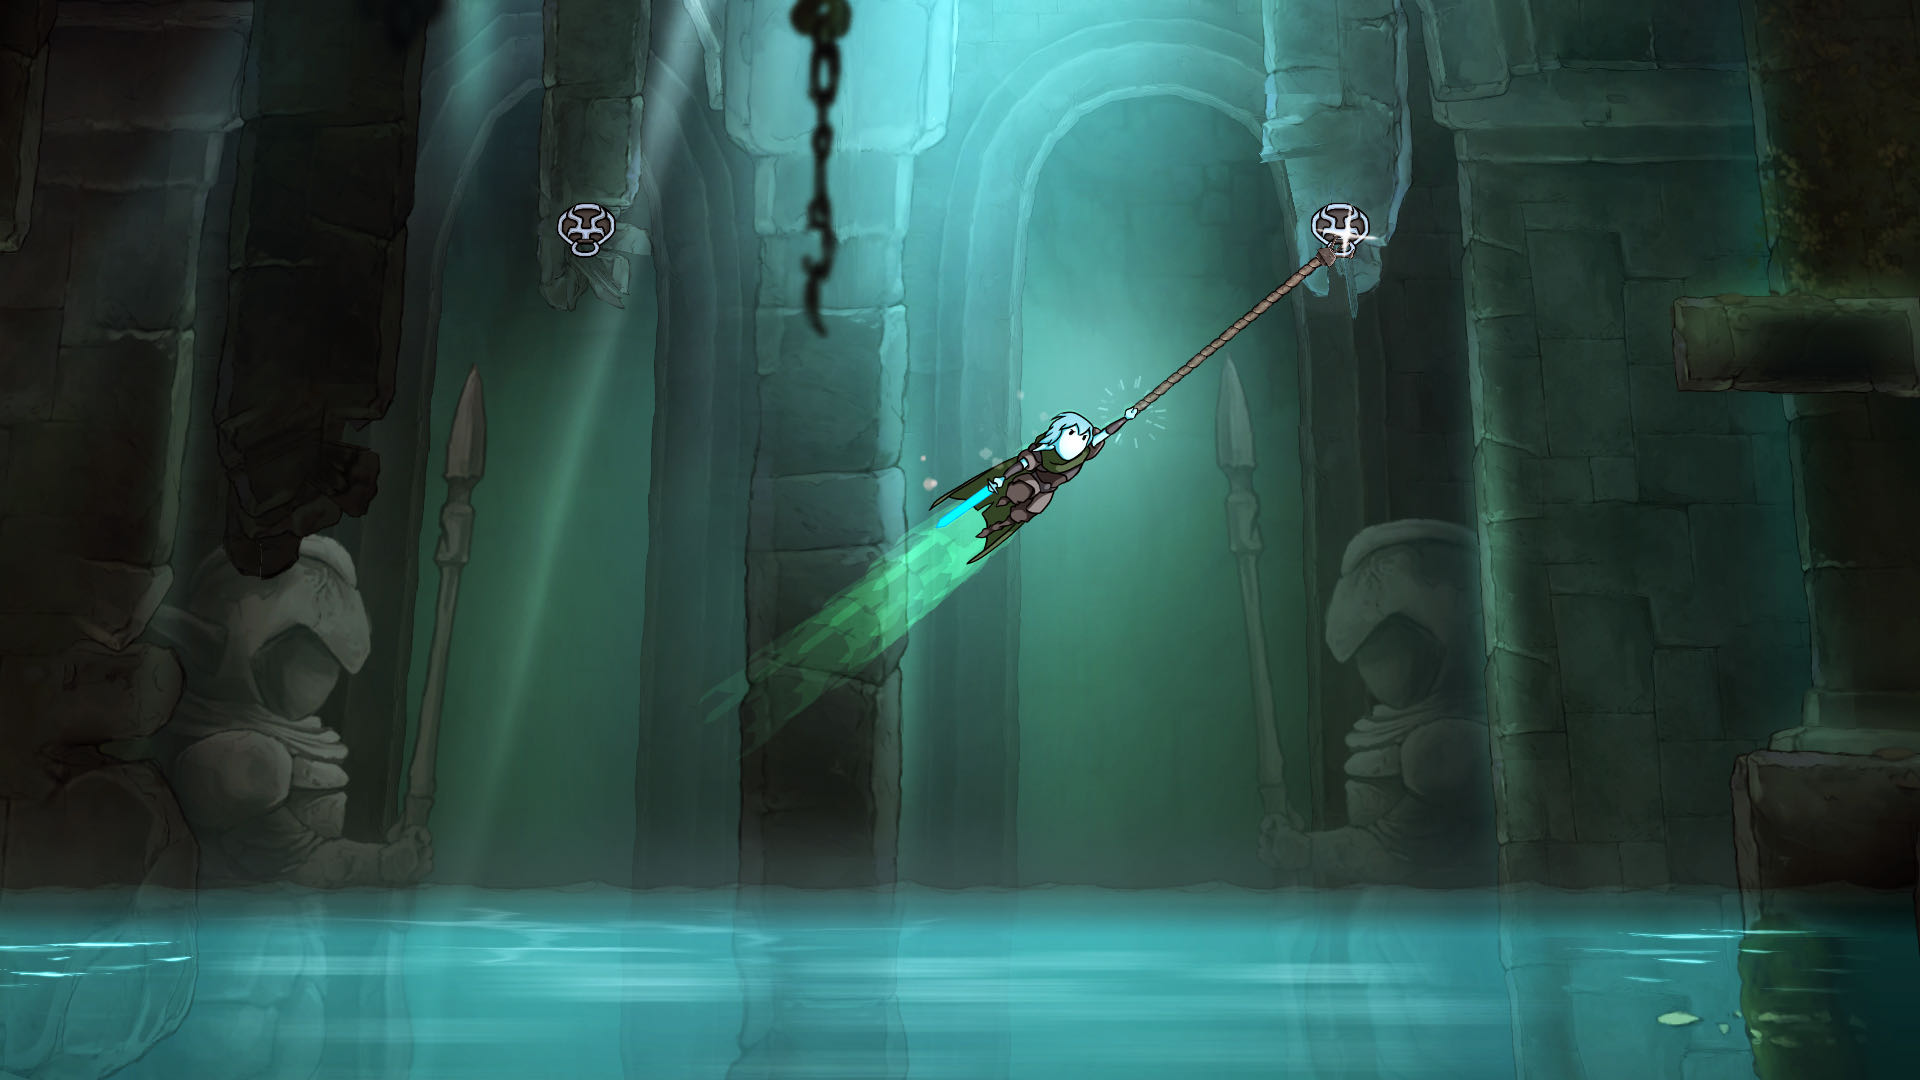 A screenshot from Greak, with Raydel using his grappling hook to cross a watery dungeon.